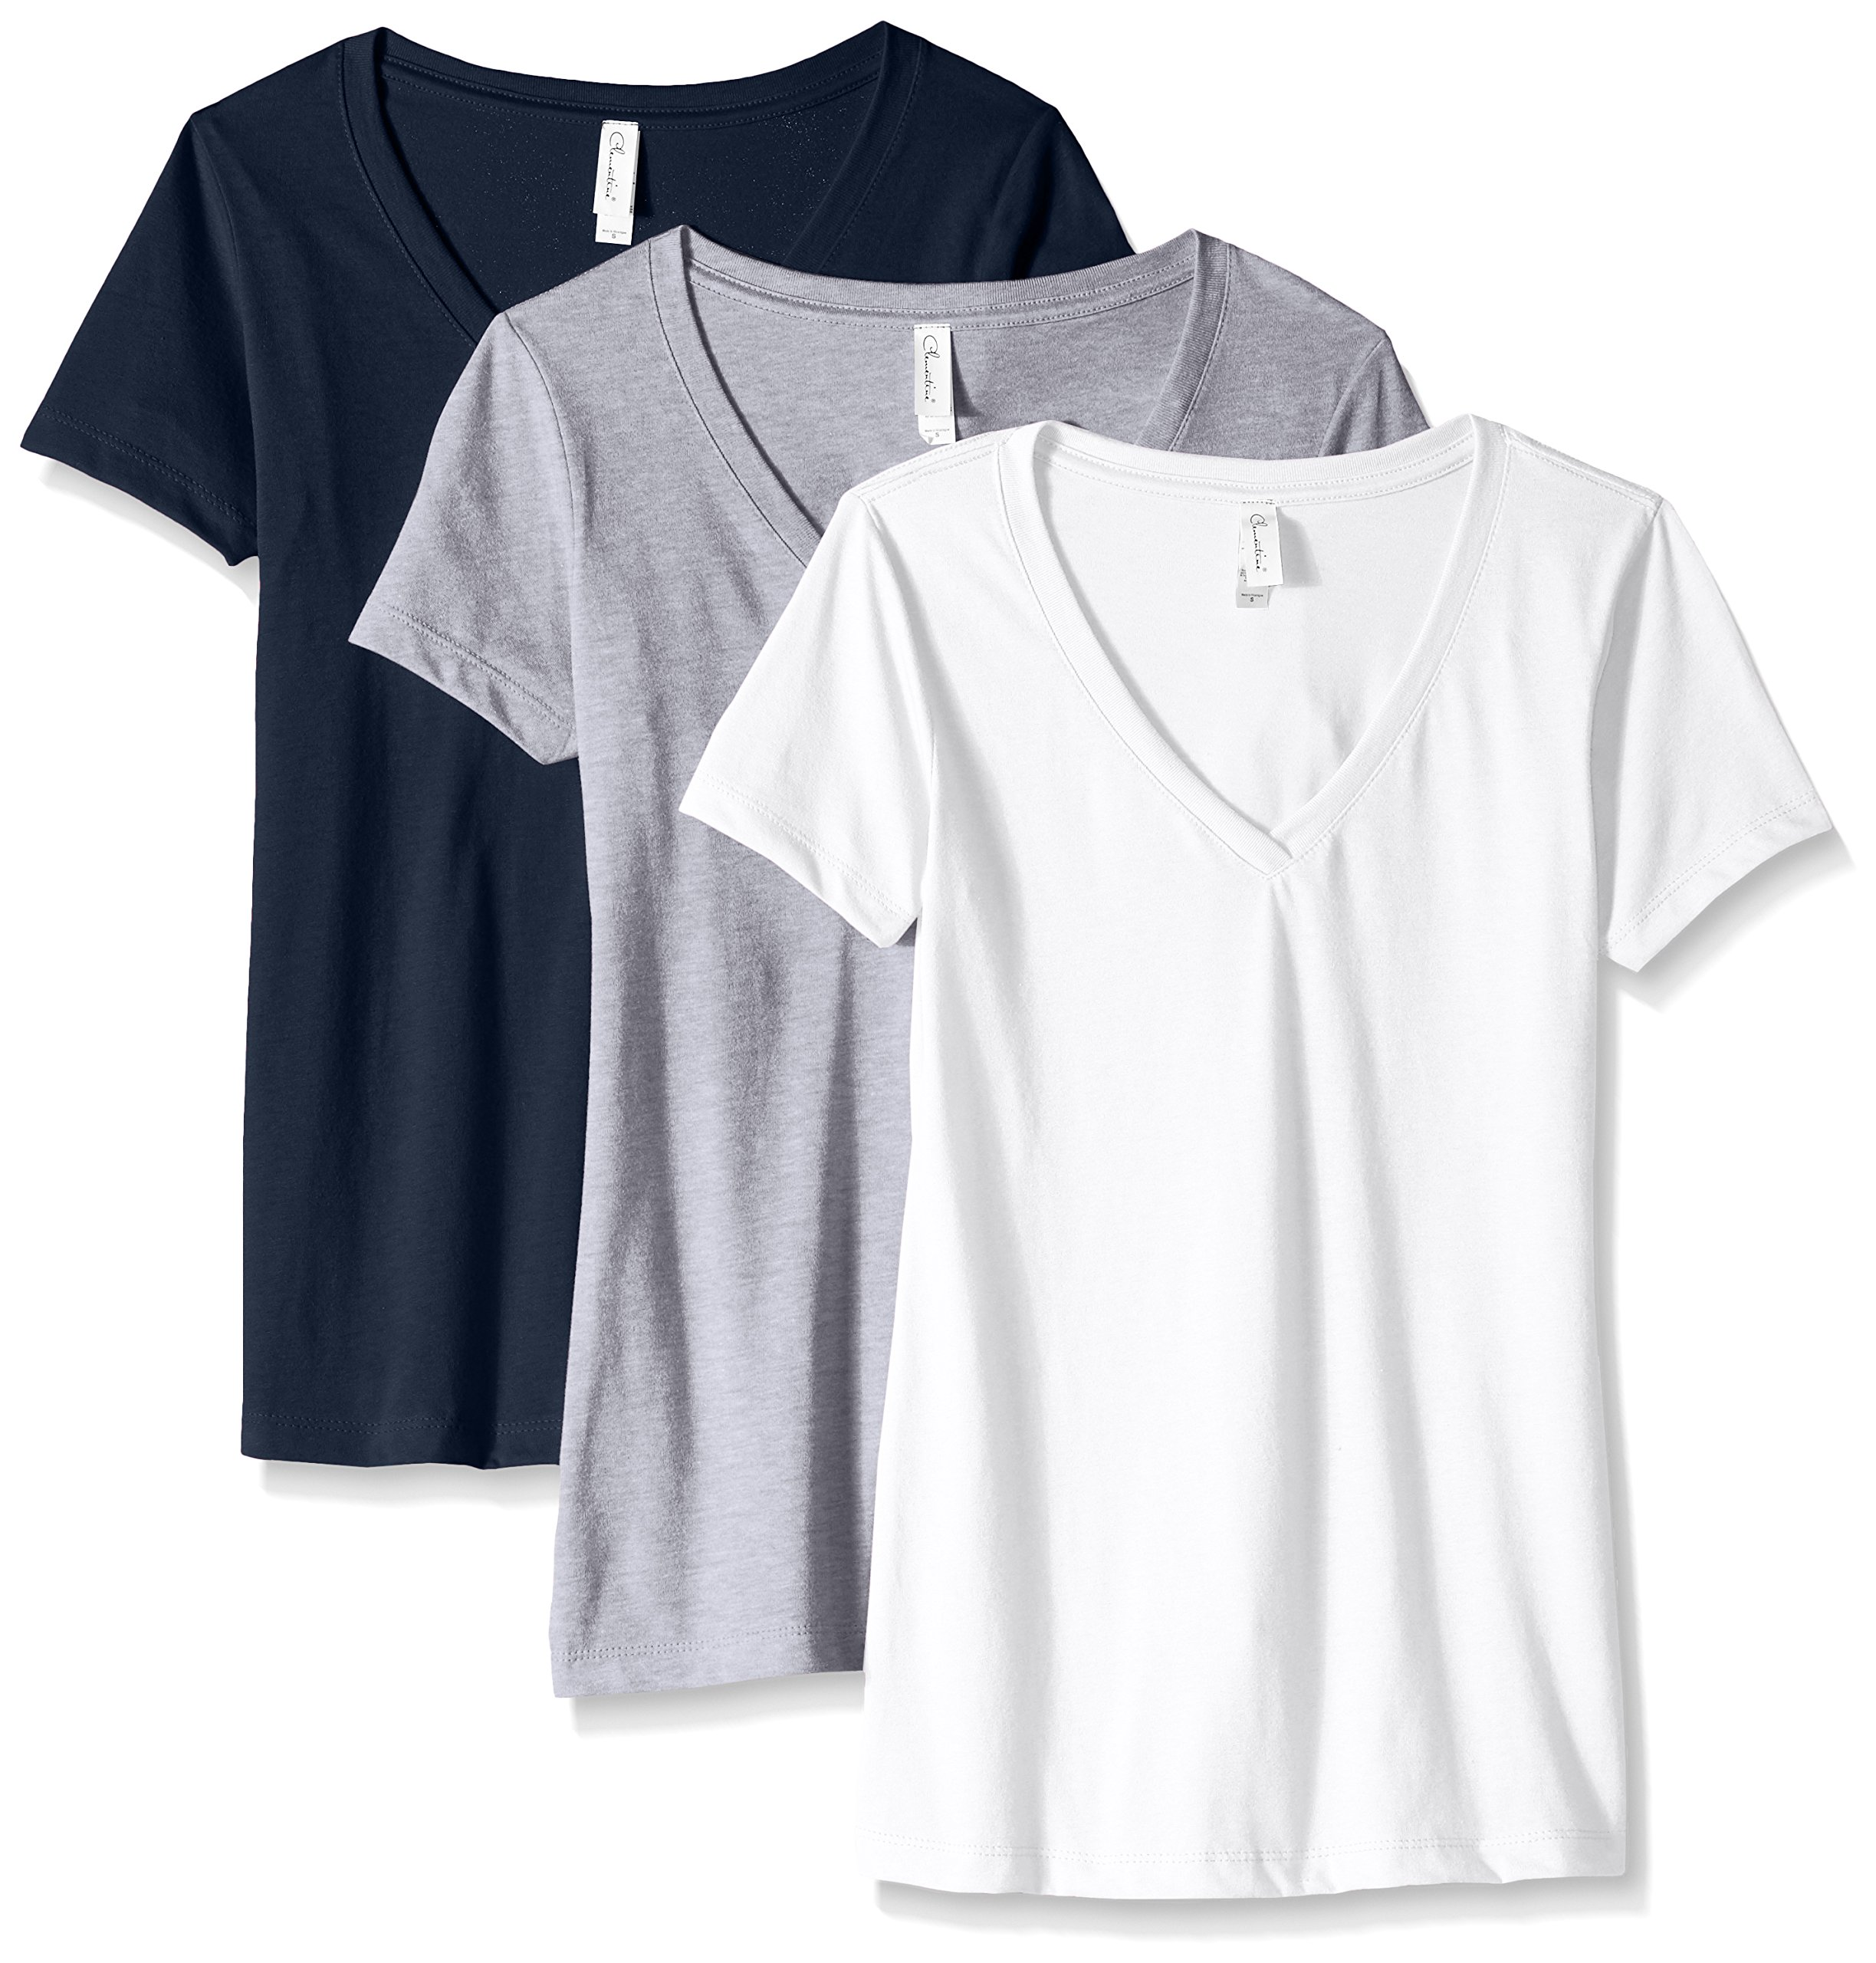 Clementine Apparel Women's Petite Plus Ideal V-Neck T-Shirt (Pack of 3), WhiteHeather GrayMidnight Navy, XL